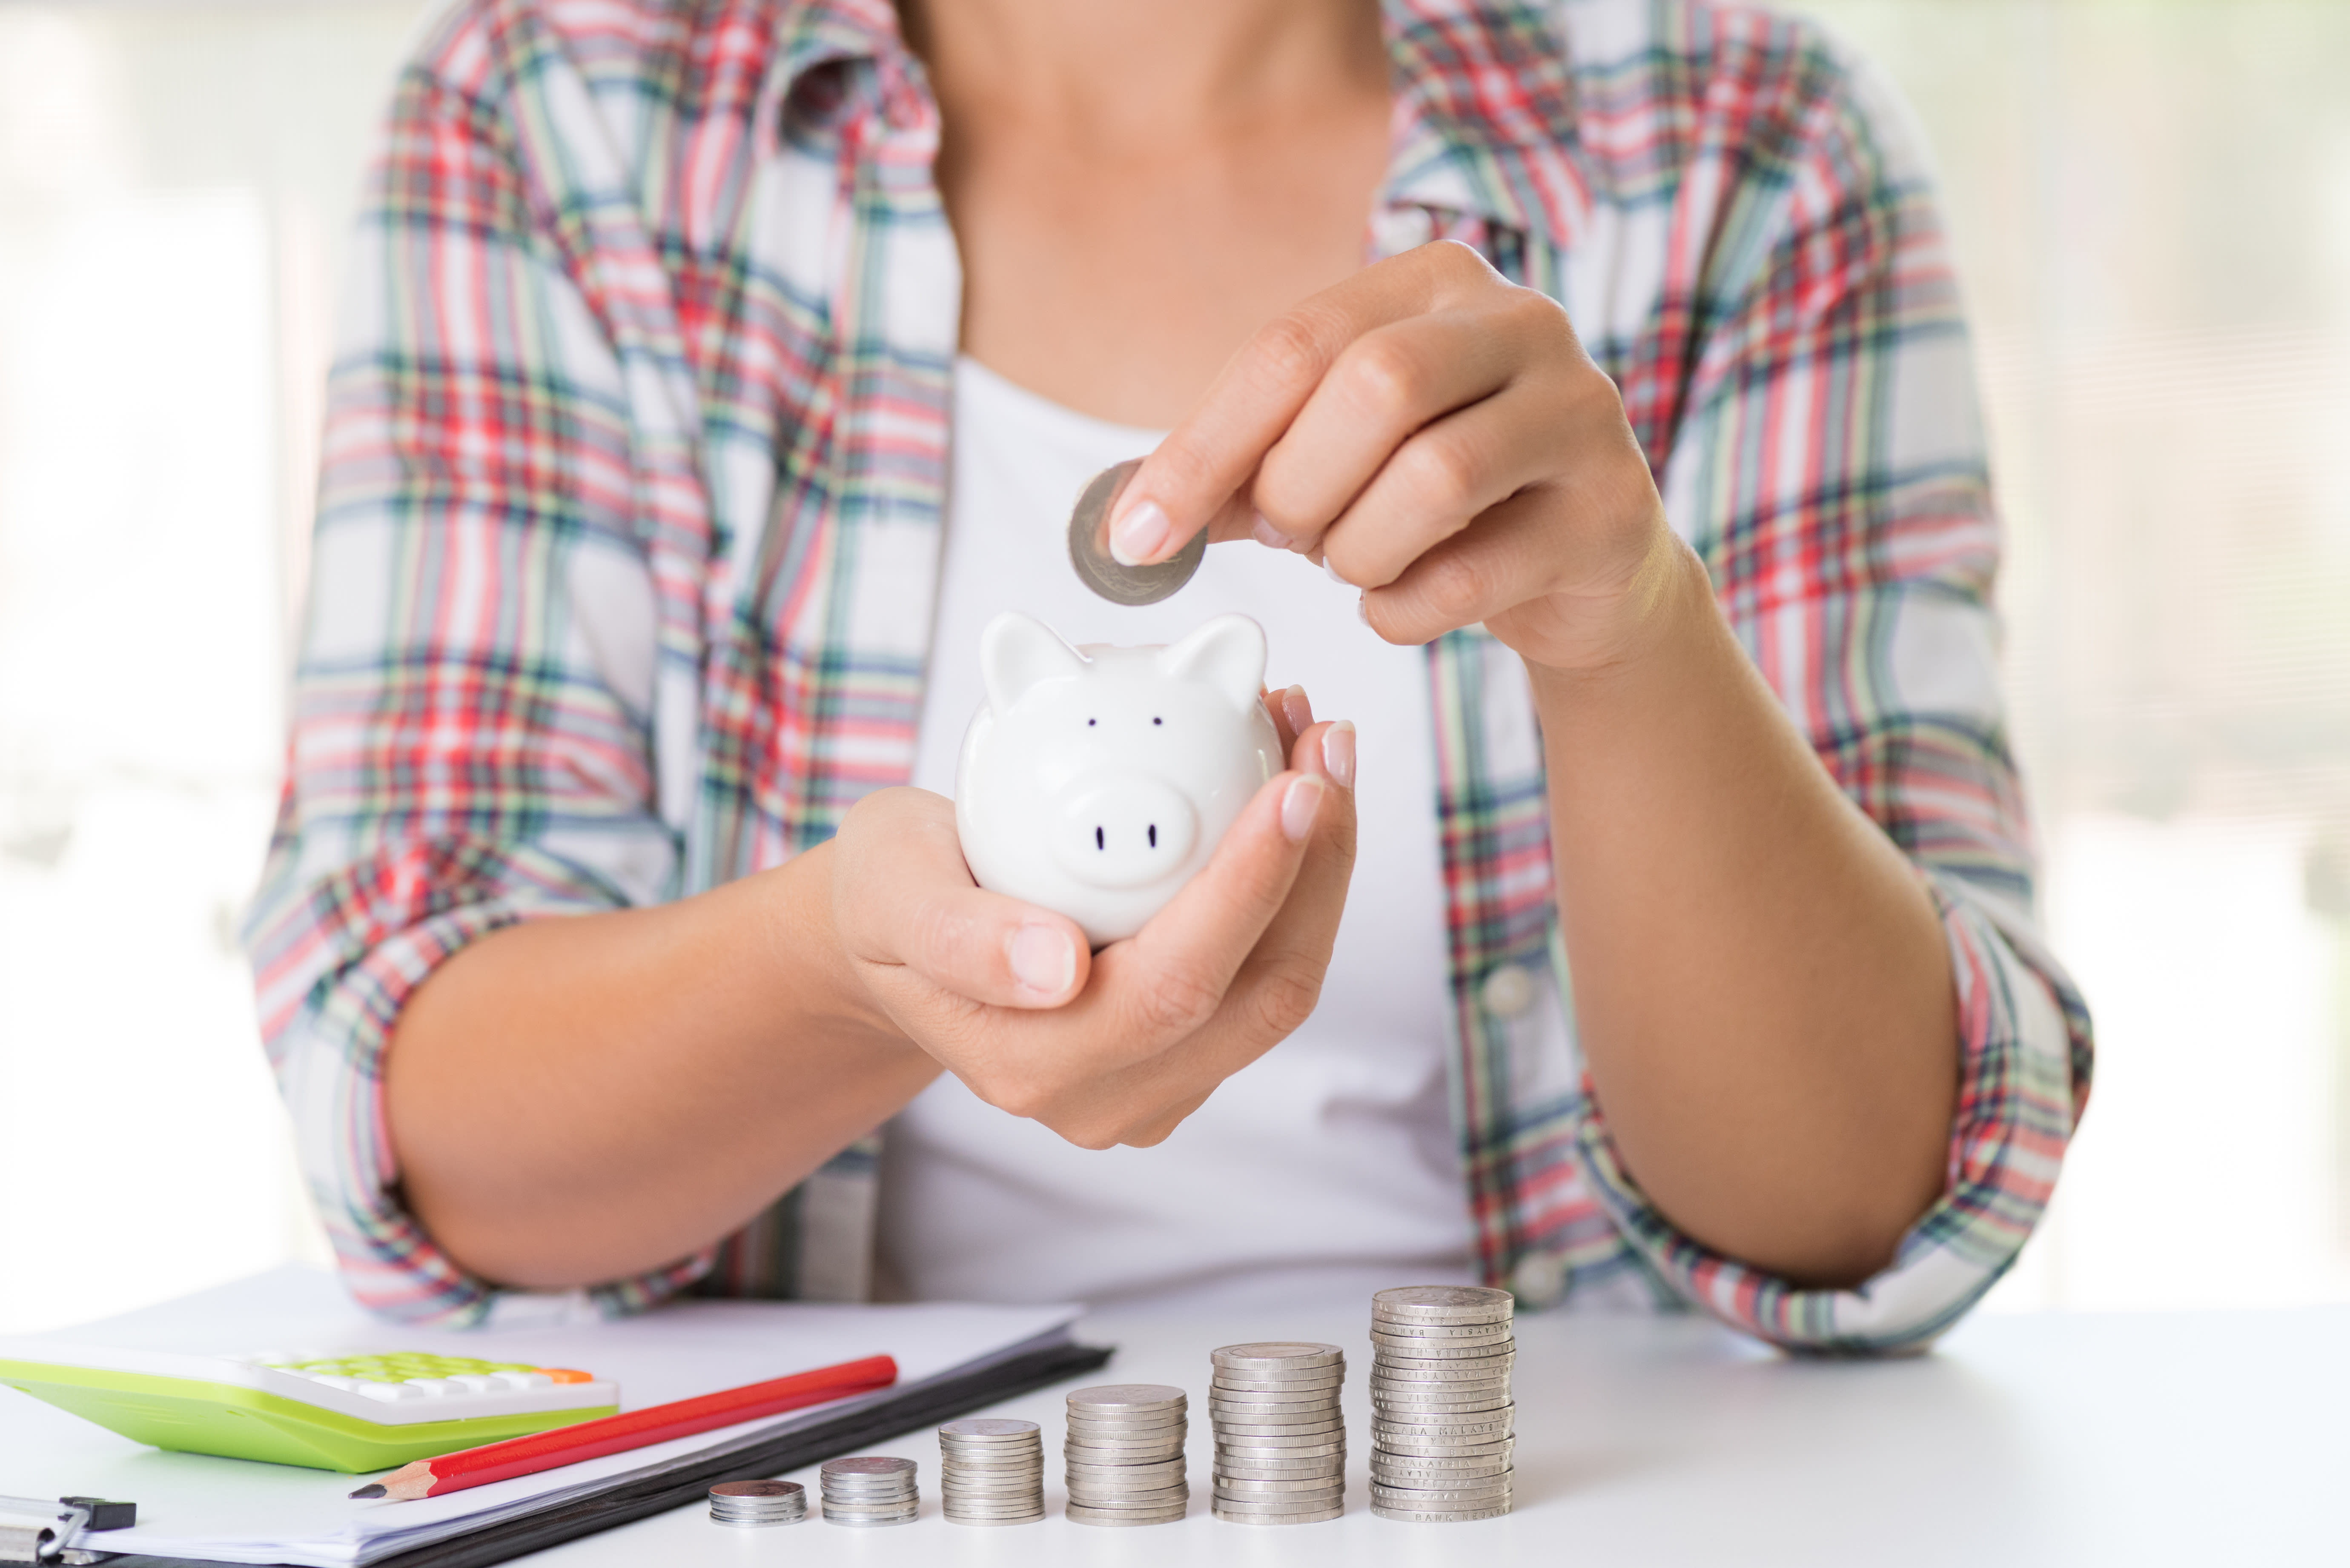 Woman hand putting money coin into piggy bank. Saving money wealth and financial concept.